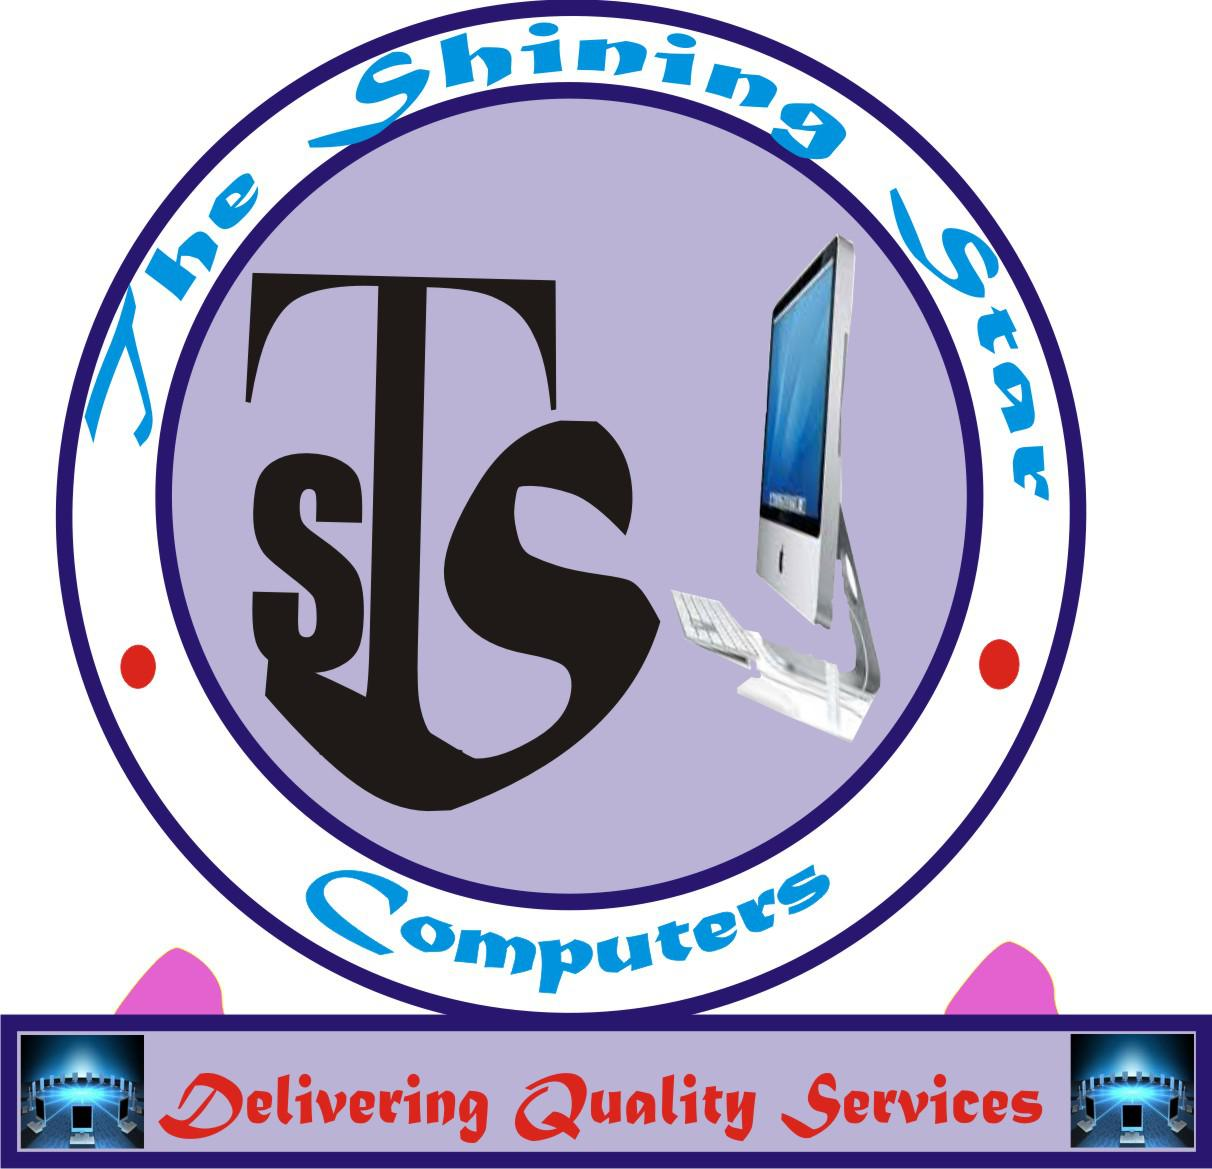 The Shining Star Computers Logo